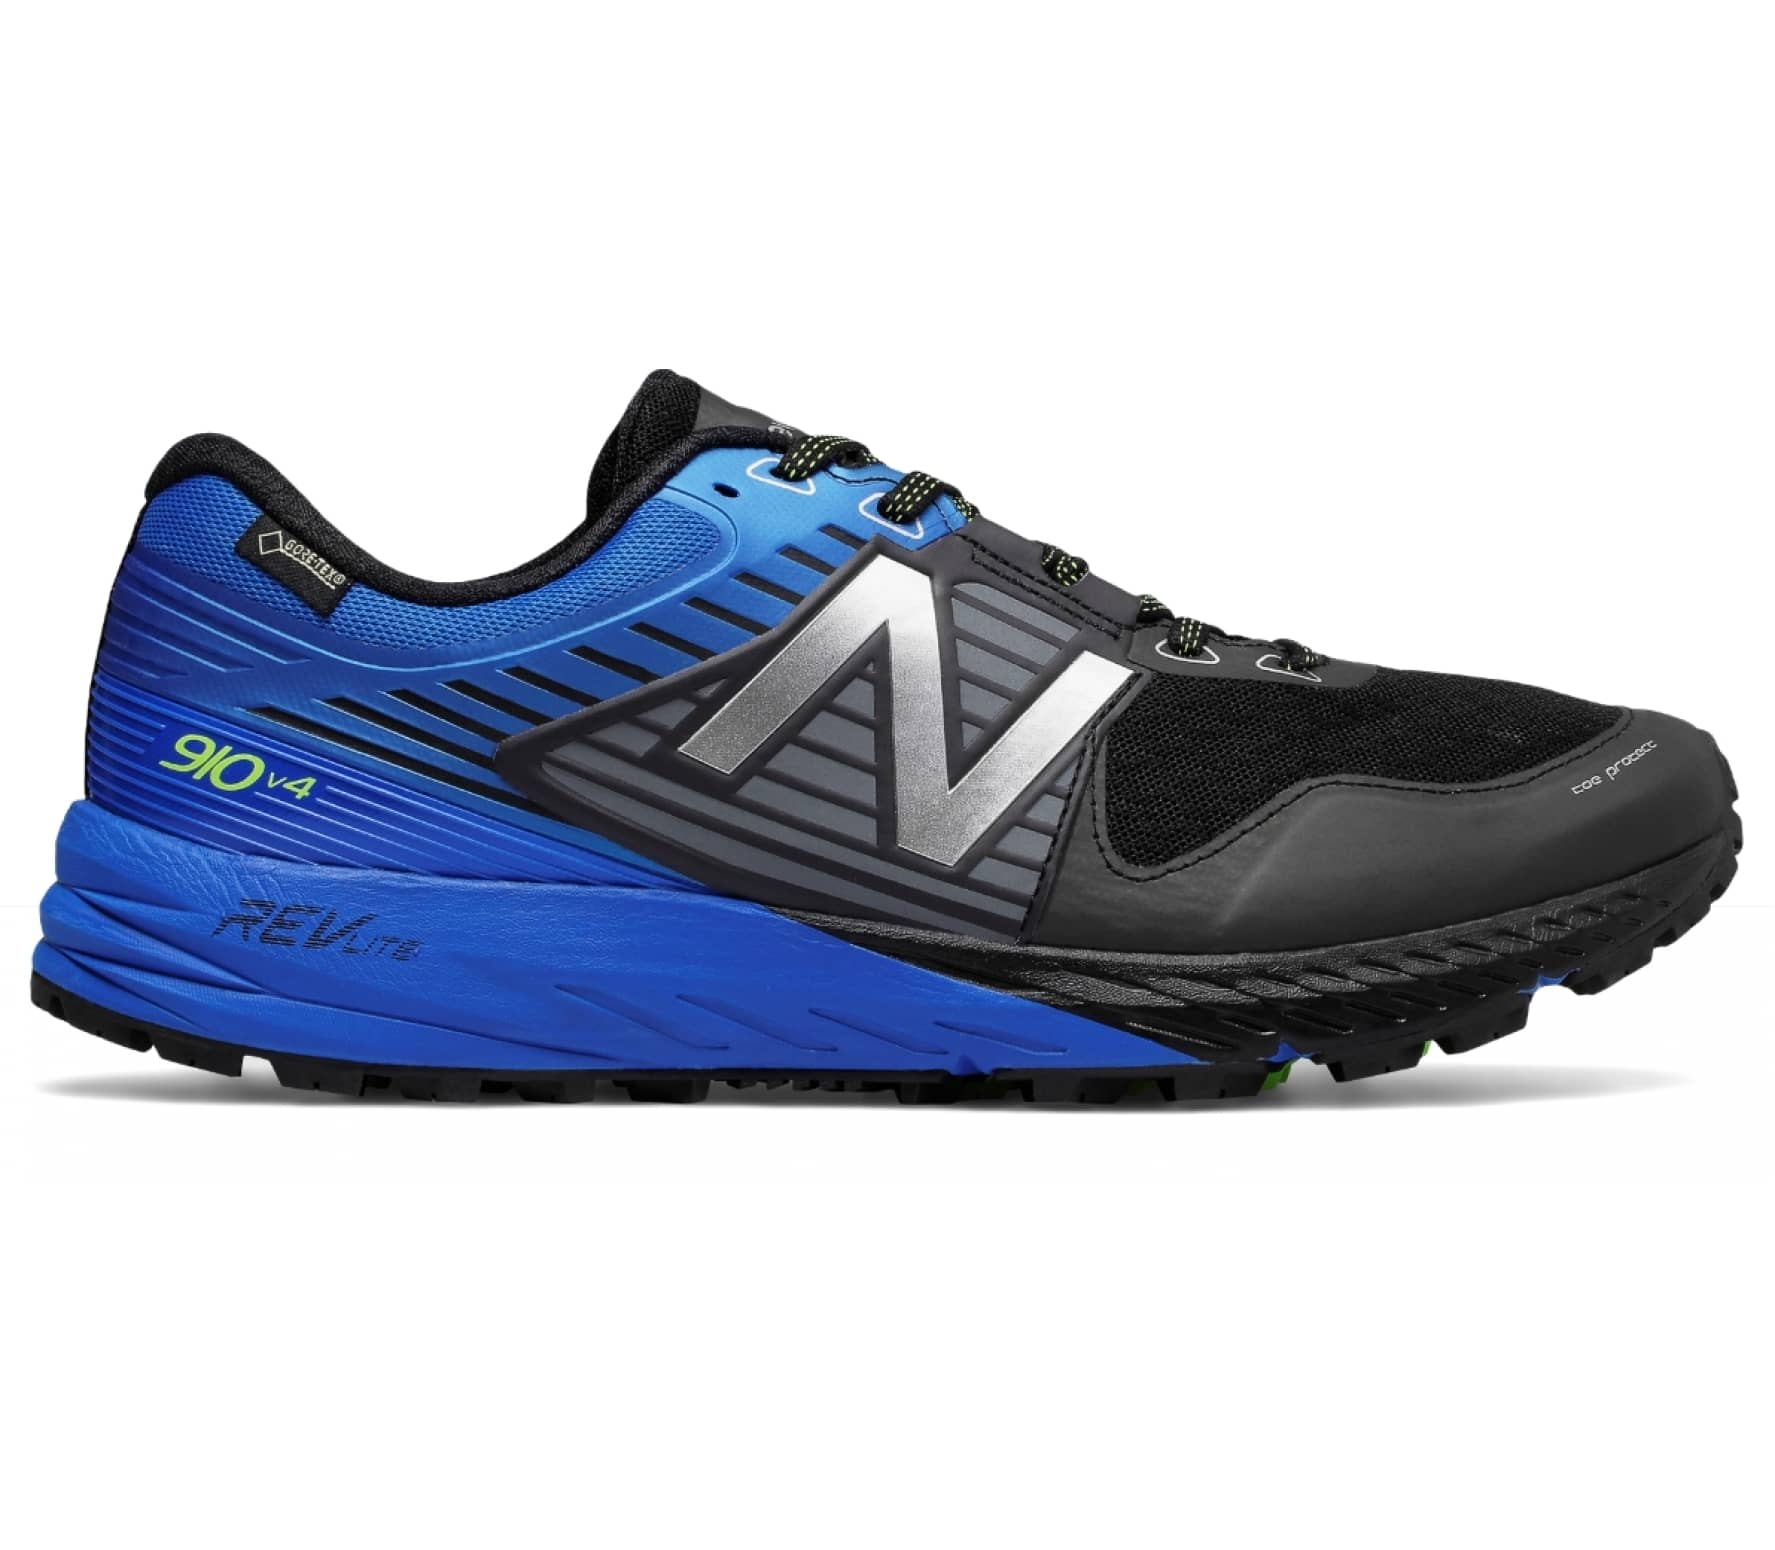 b49252e5ddab New Balance - Trail NBx 910 v4 Gore-TEX men s running shoes (blue ...